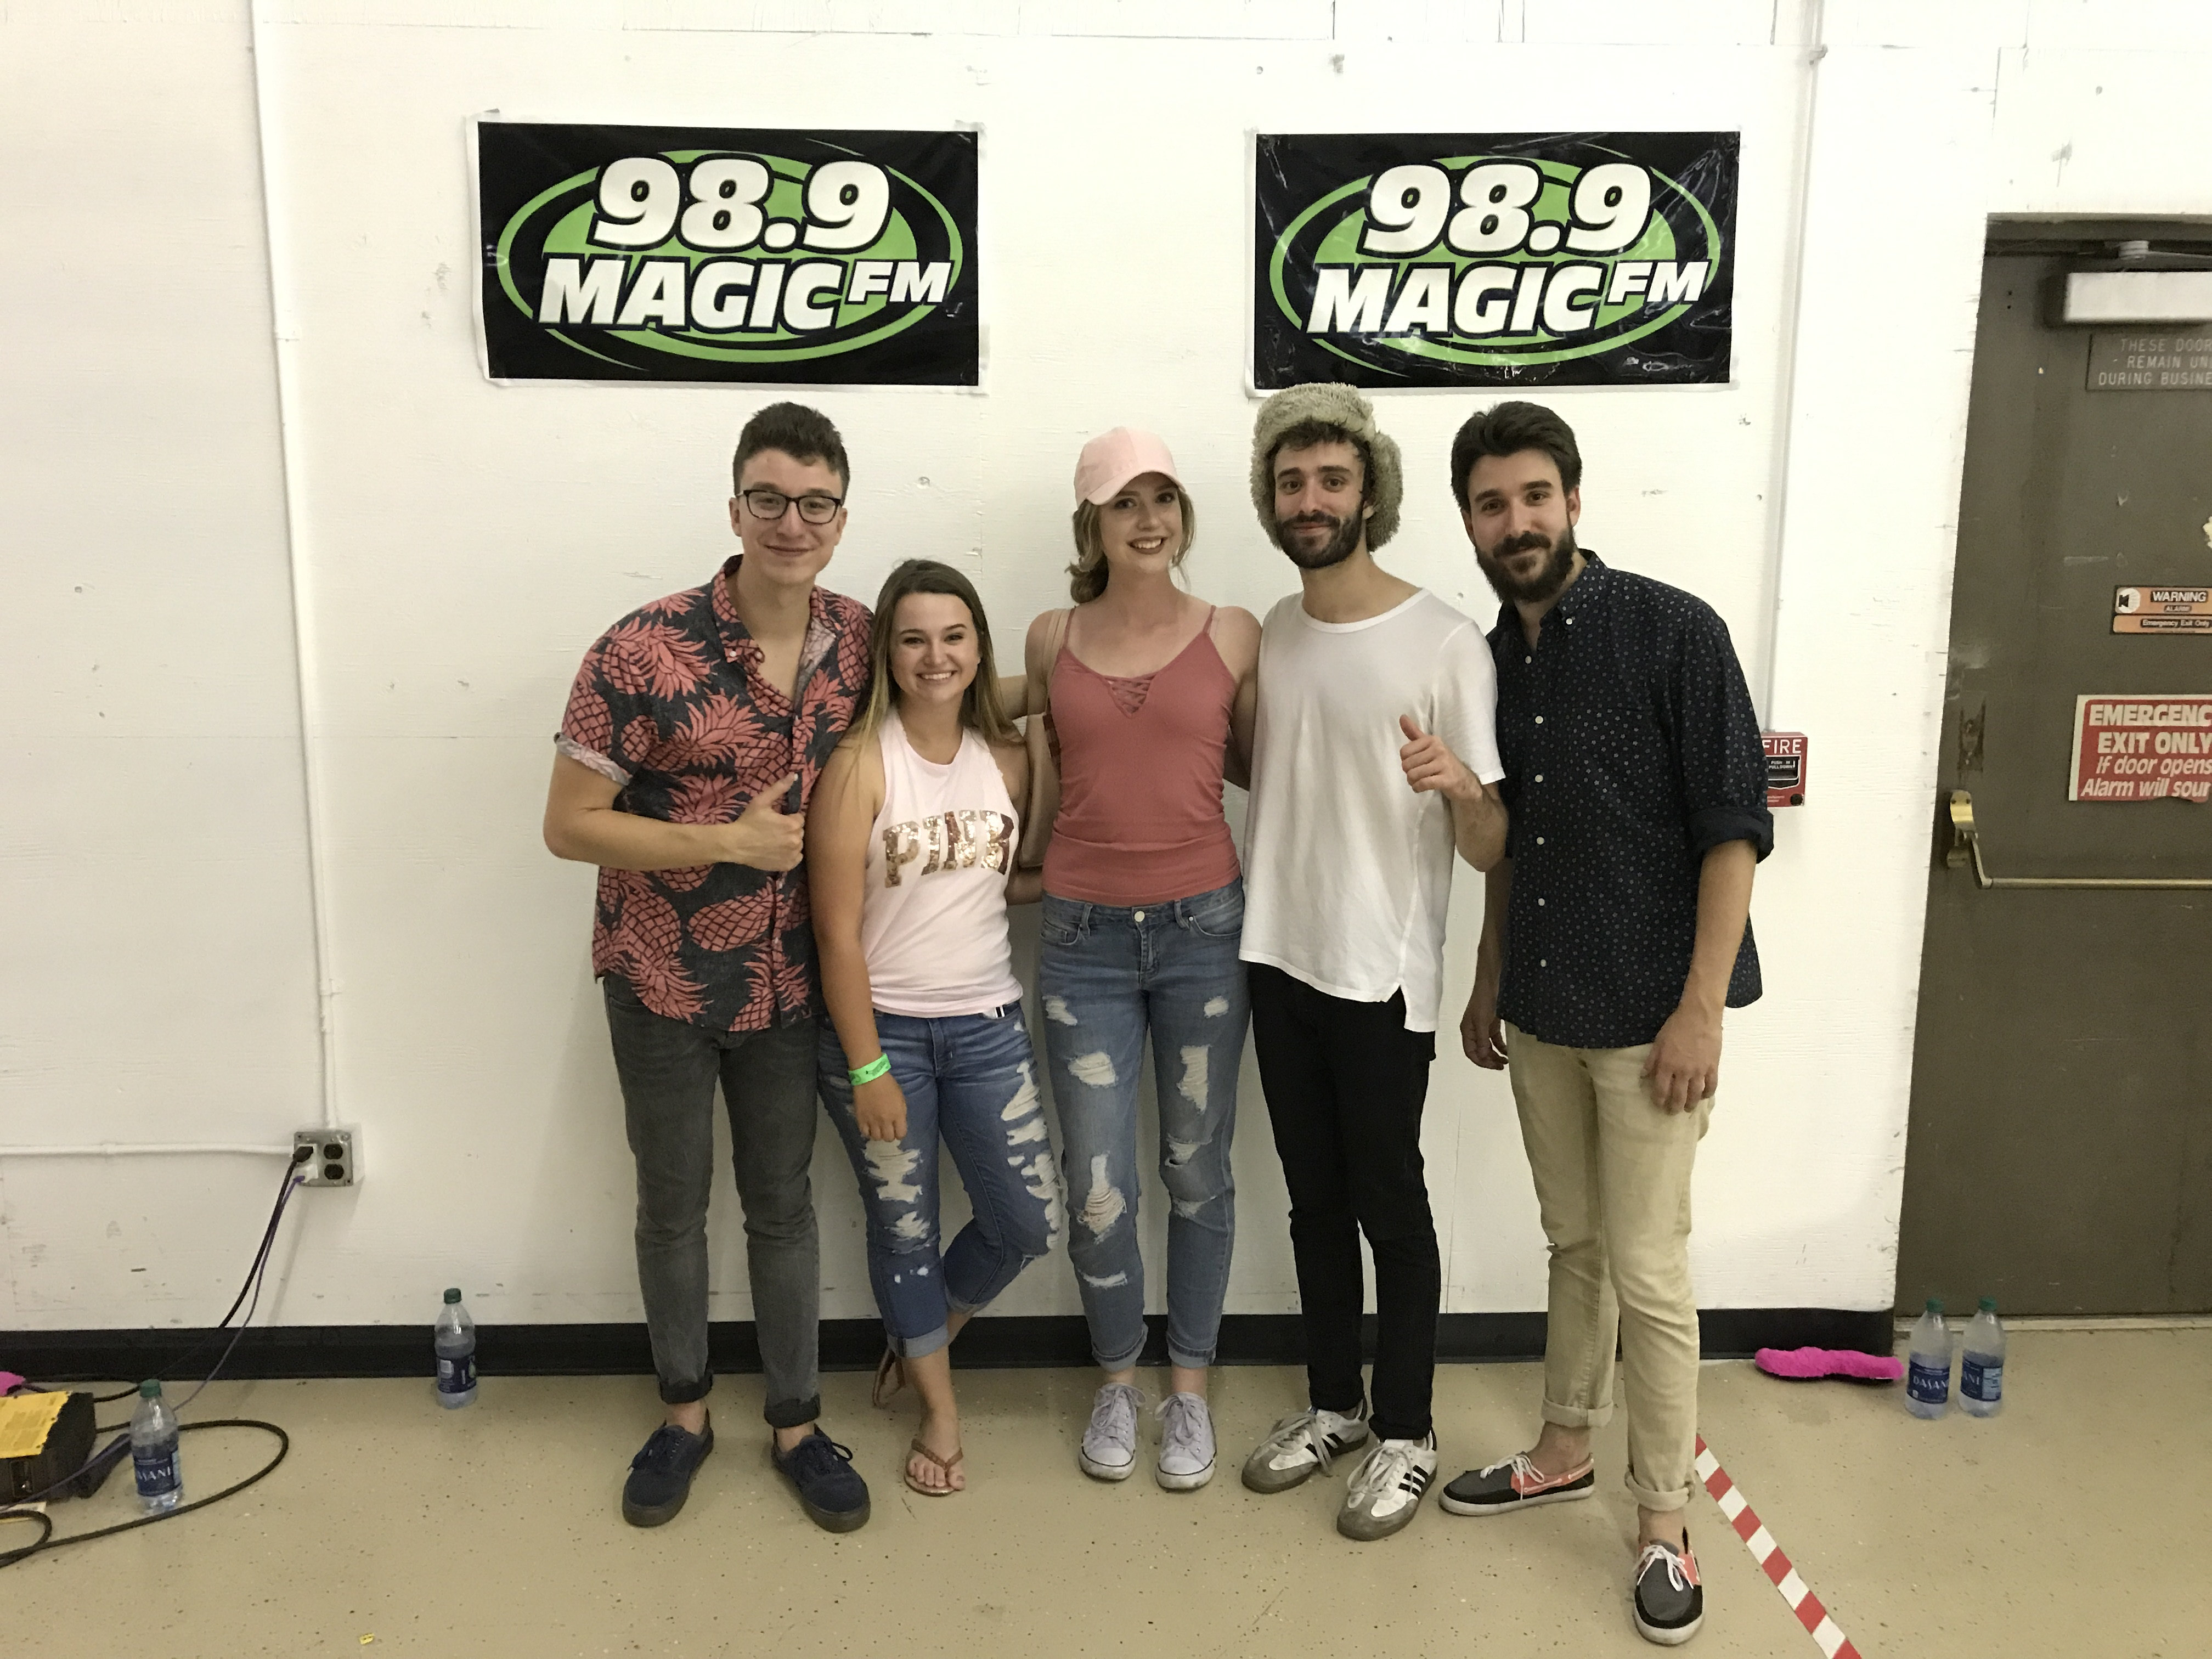 Ajr meet and greet pictures kkmg fm headlines kristyandbryce Choice Image